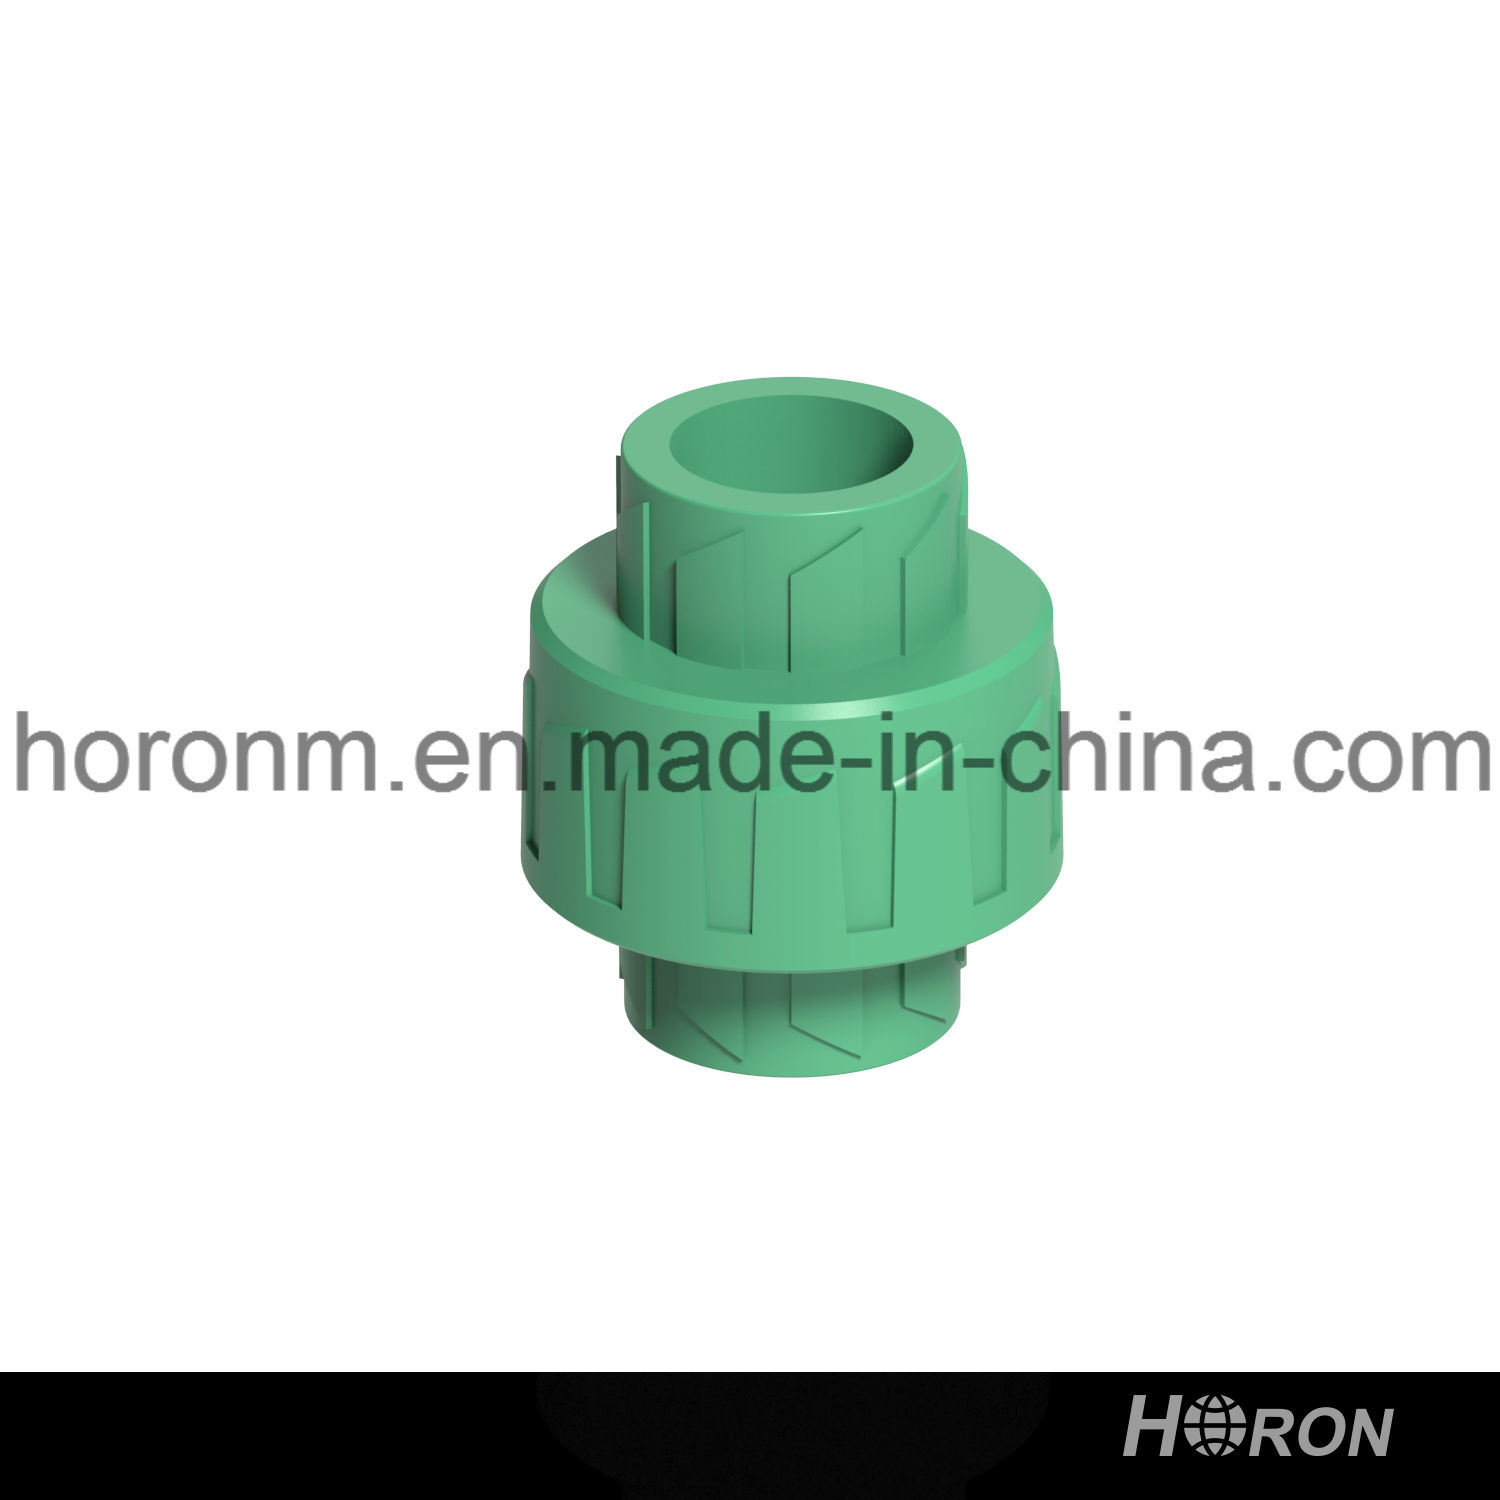 Water Pipe-PPR Pipe-PPR Tube-PP Pipe-Plastic Pipe-Green PPR Pipe